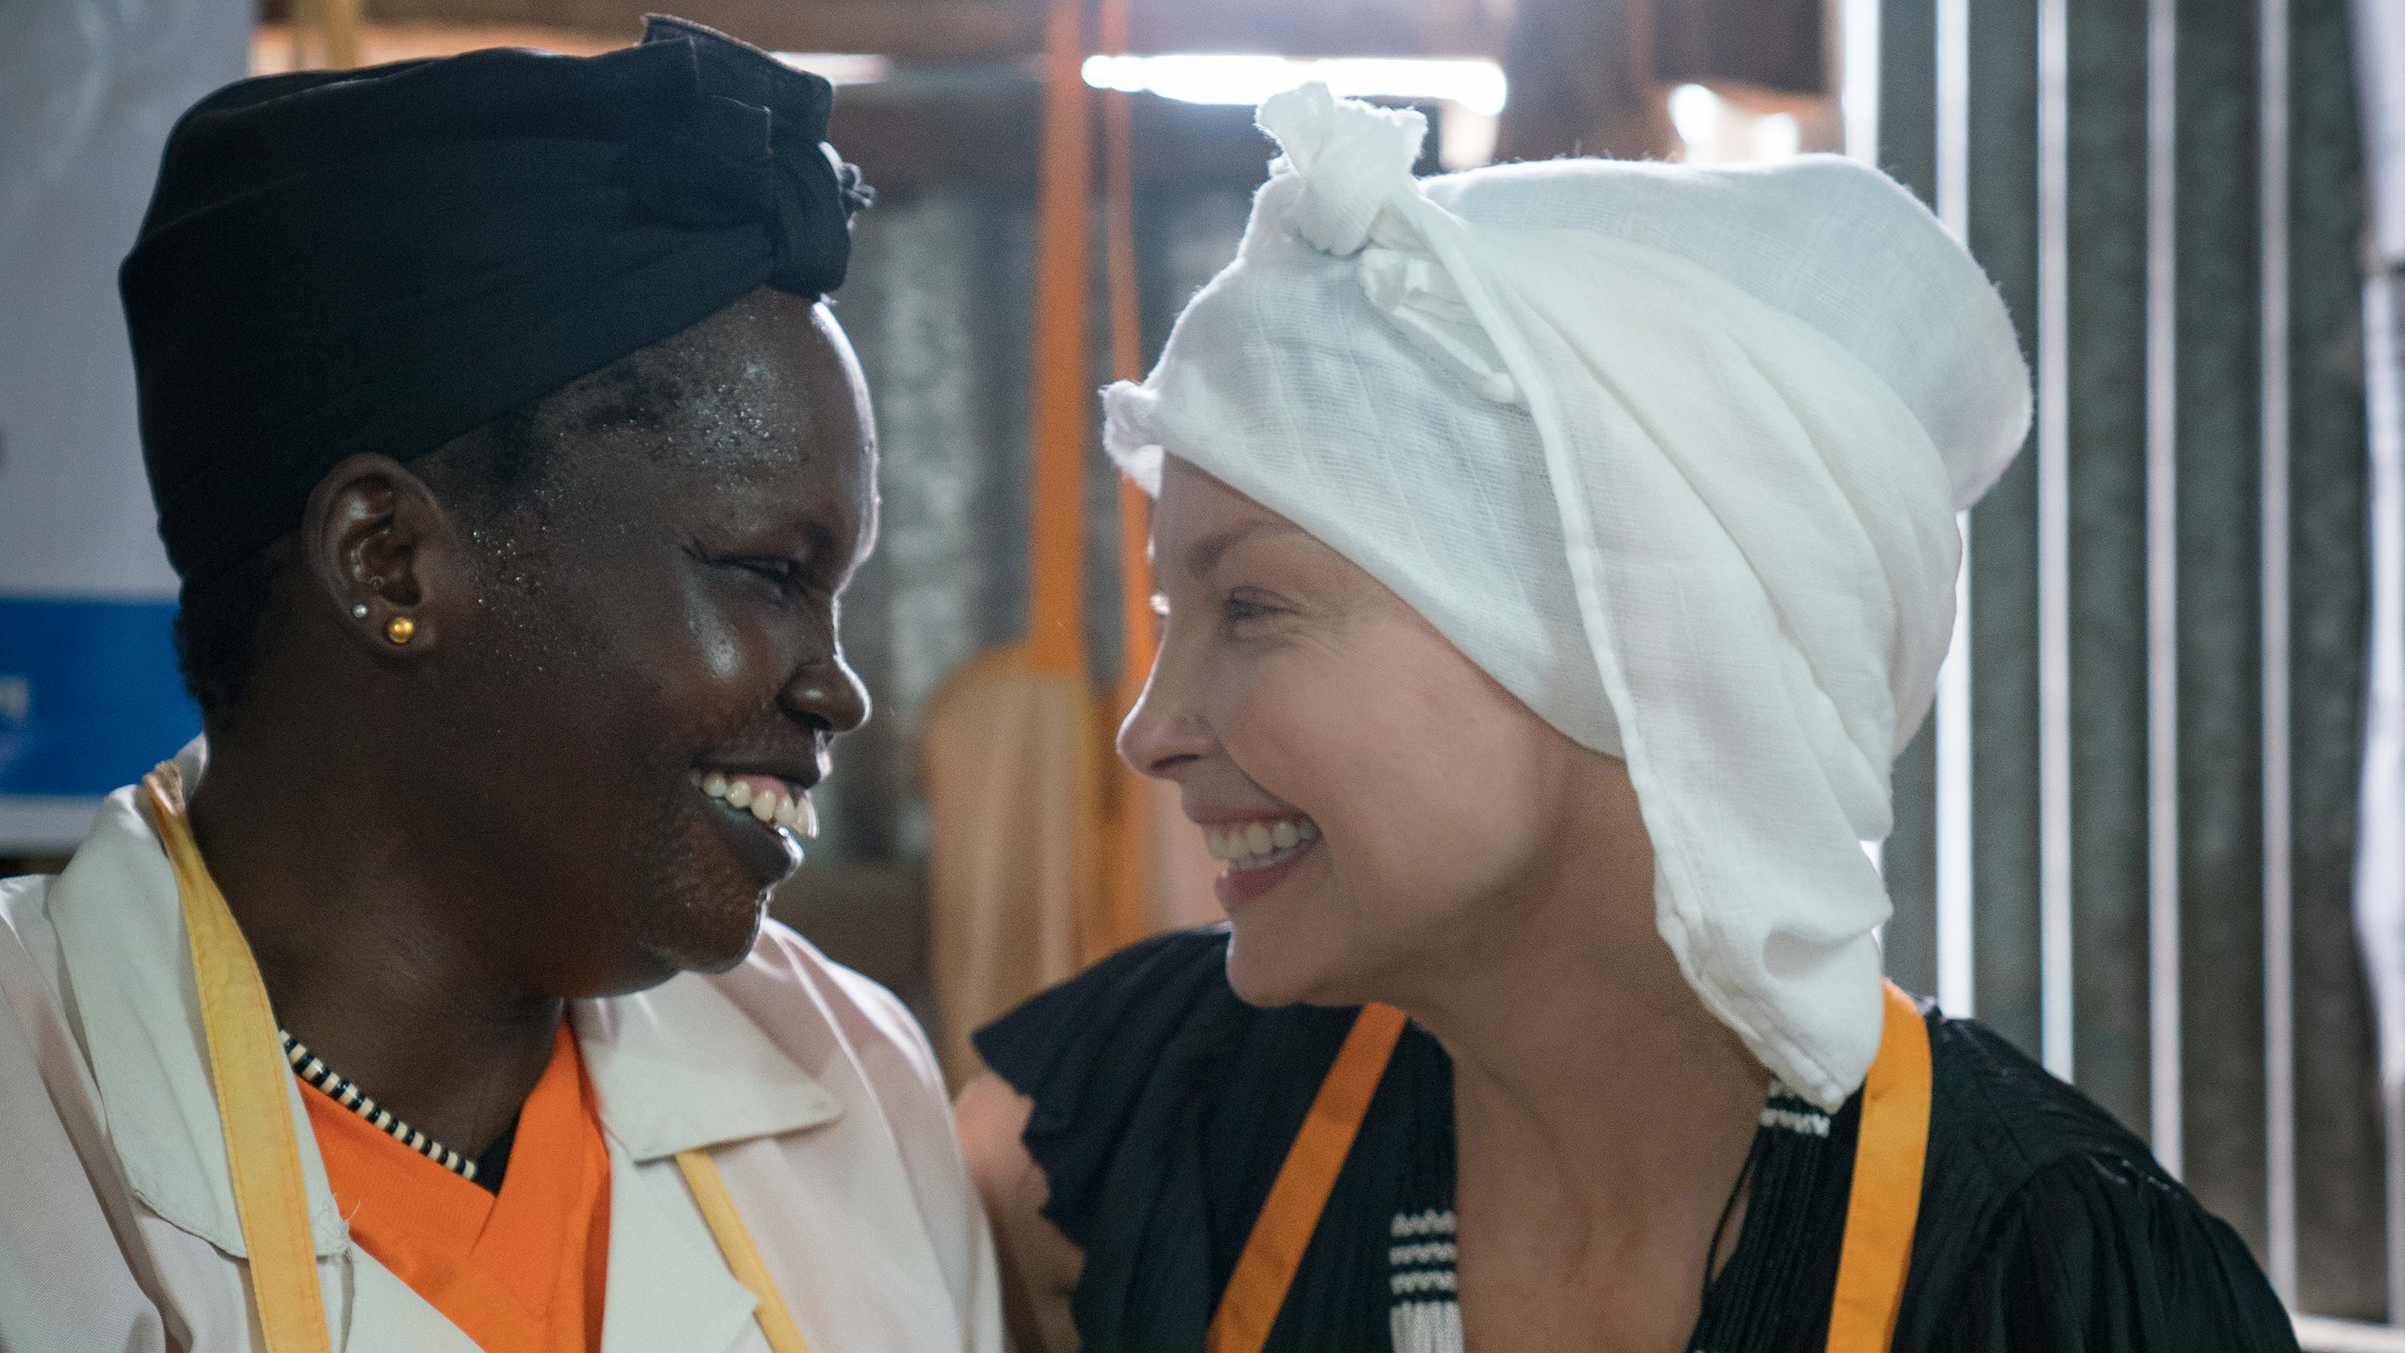 Ashley Judd and Theresa (lead midwife) smile after the safe delivery of baby named Ashley to her mother, Nyakal. Taken at International Rescue Committee clinic supported by UNFPA, Bentiu Protection Of Civilians Site, South Sudan.